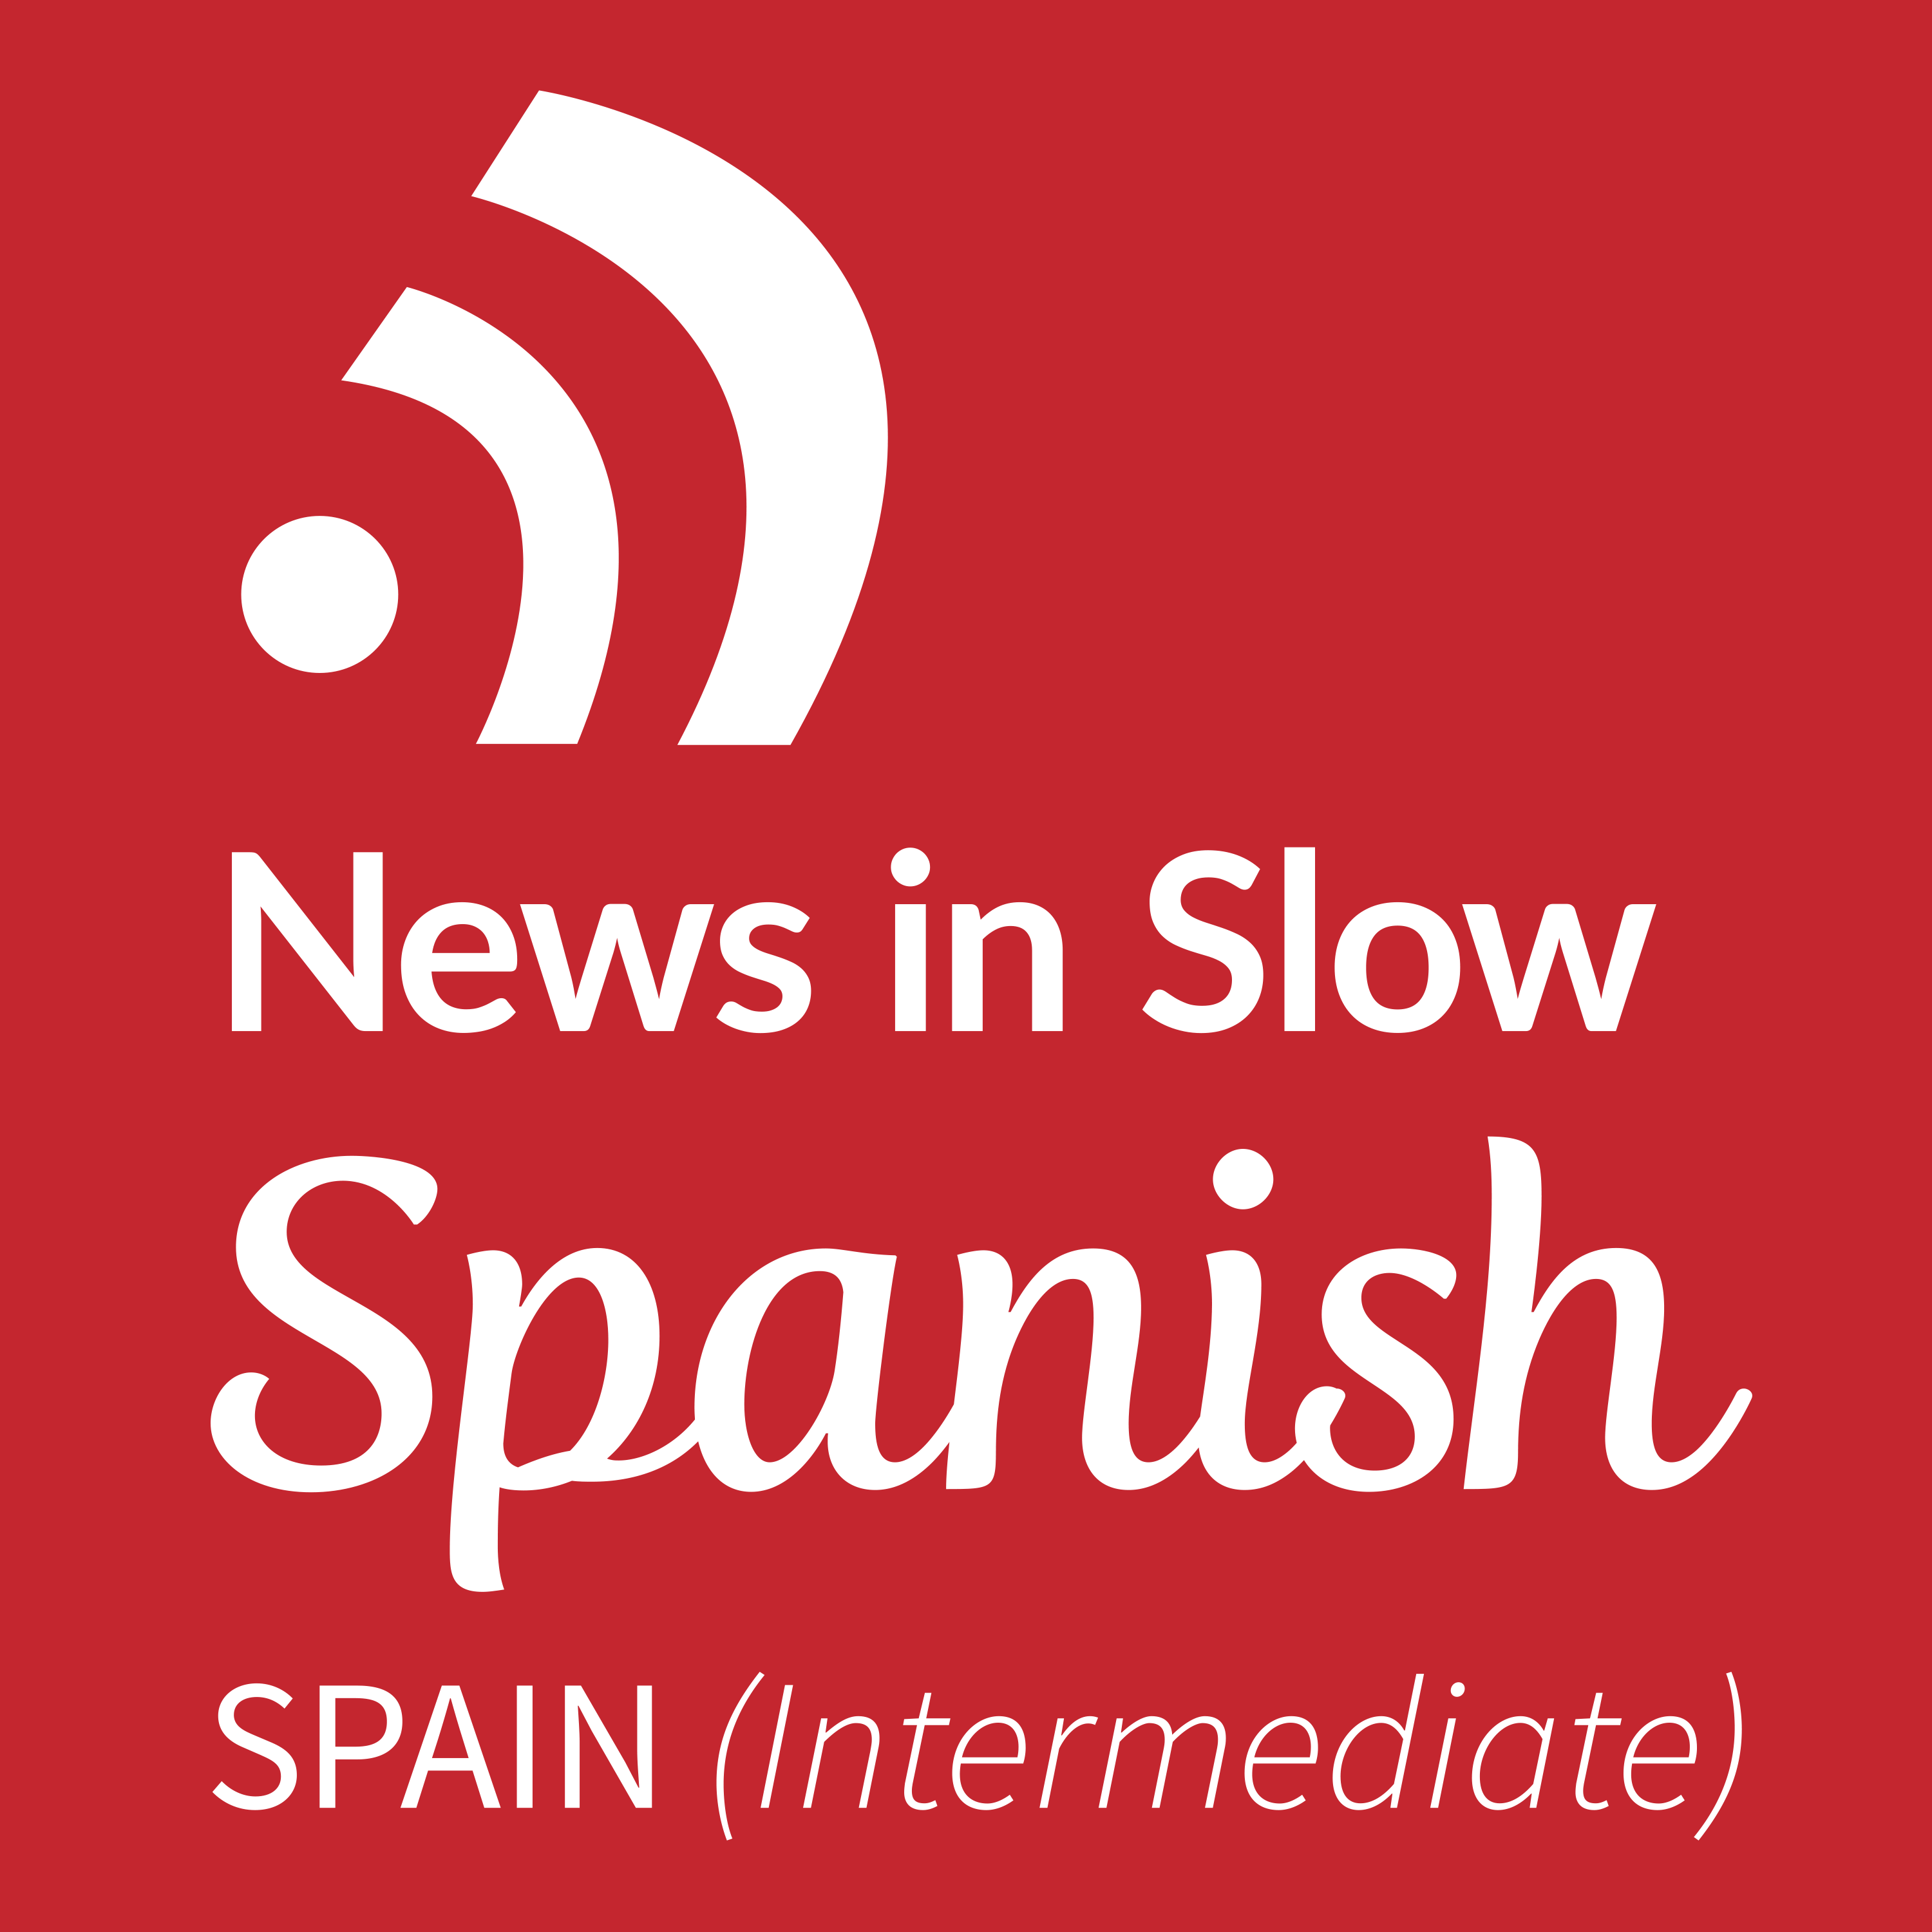 News in Slow Spanish - #409 - Weekly language learning show with discussion of current events